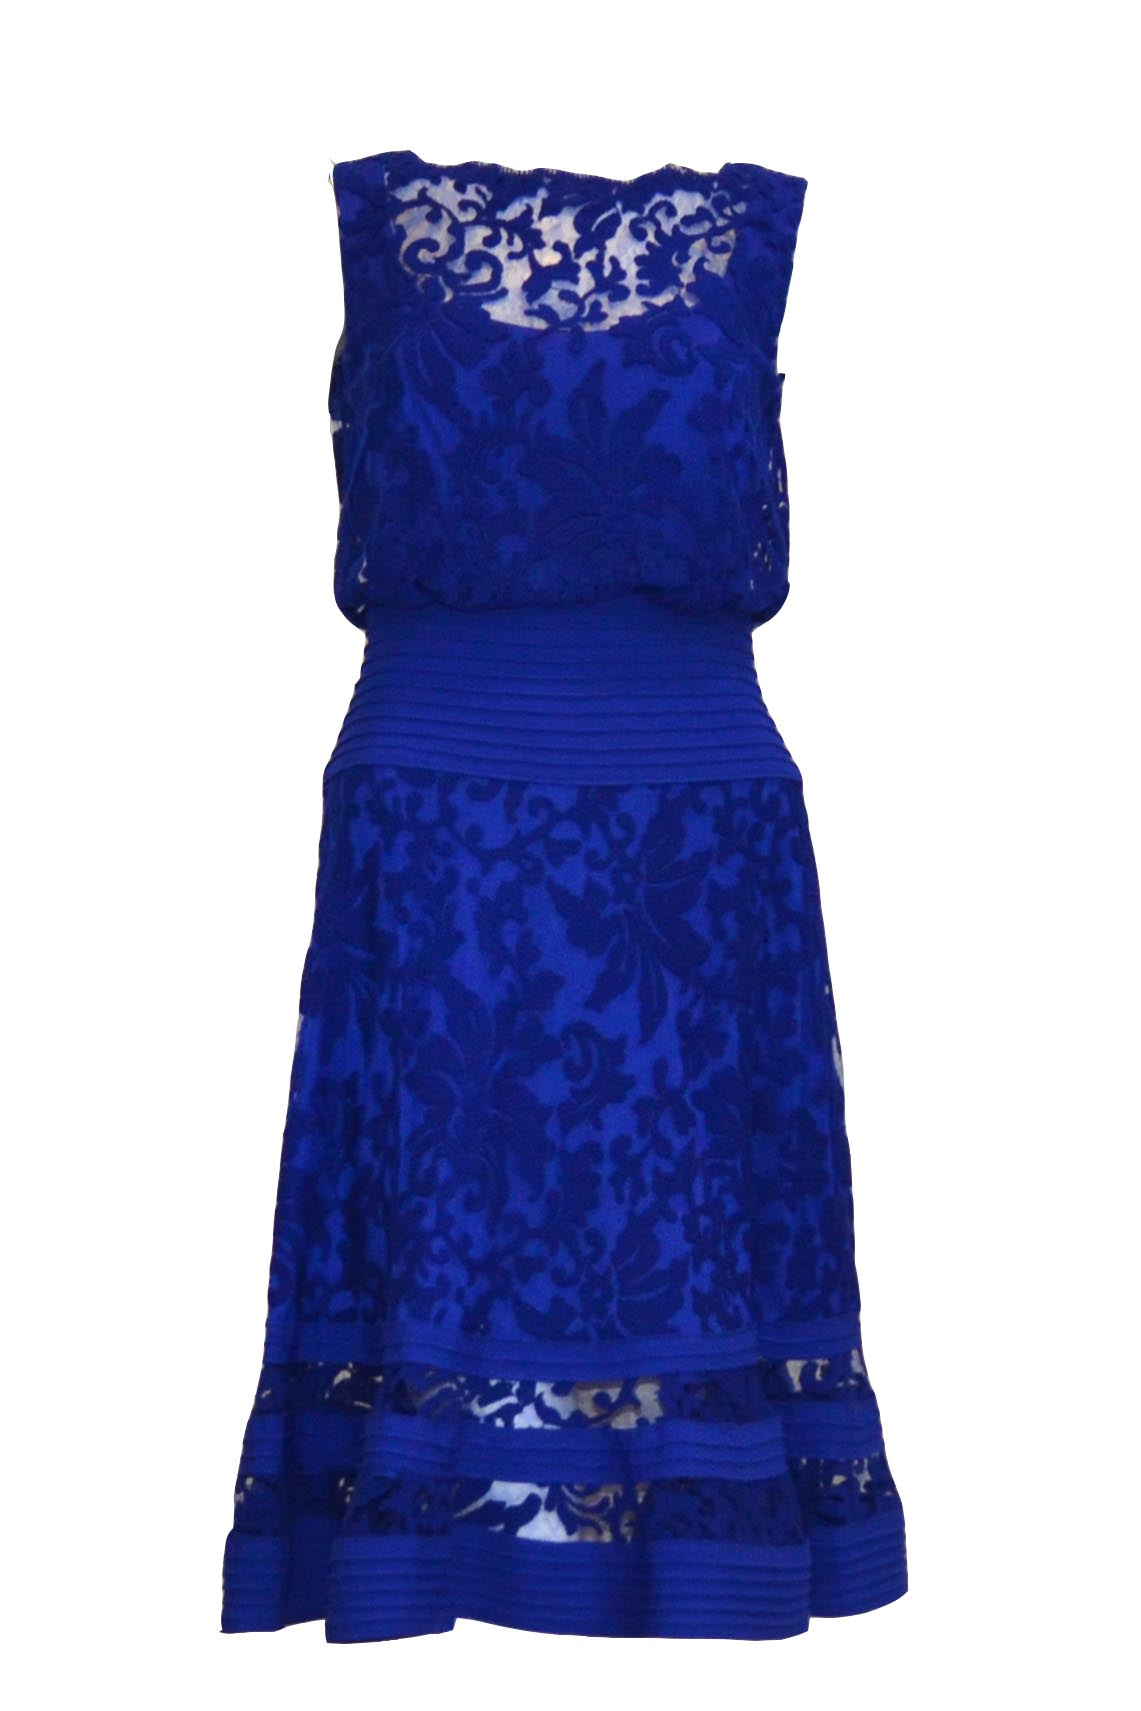 Rent: Tadashi Shoji Blue Sleeveless Cocktail Dress